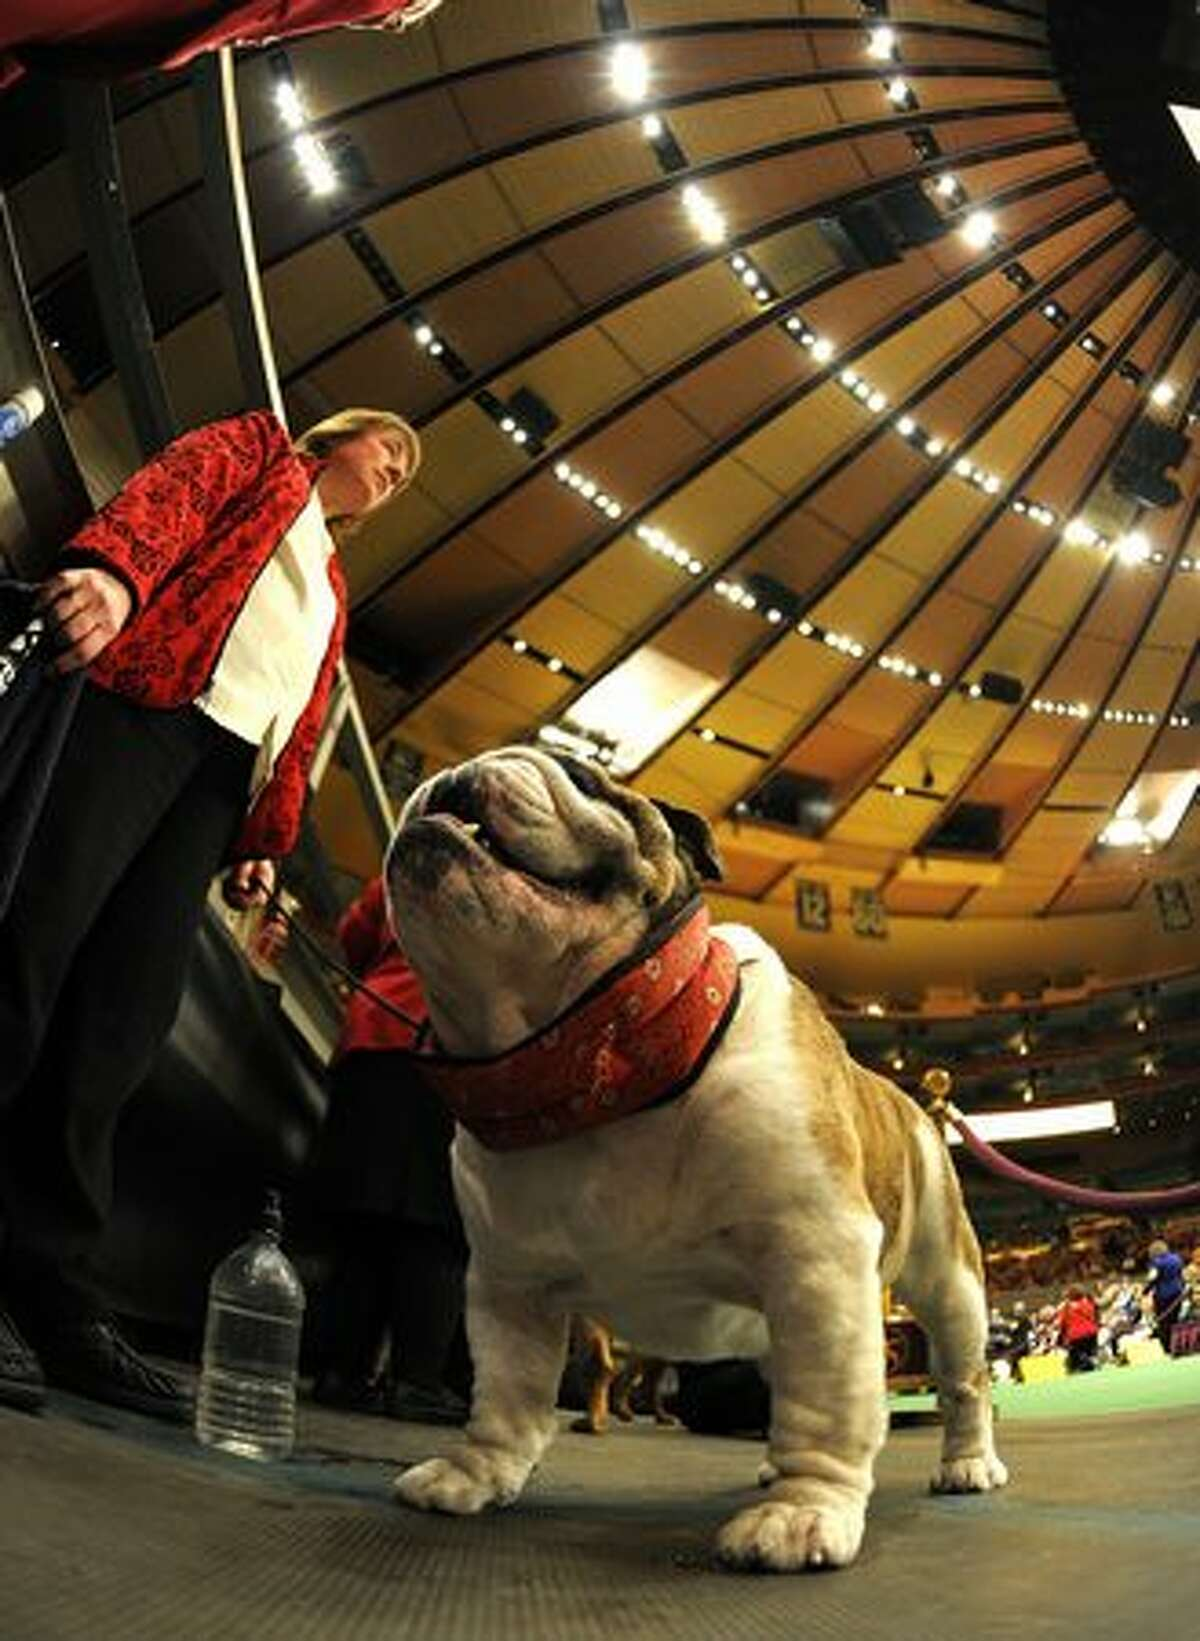 A Bulldog waits to go in the judging ring during the 135th Westminster Kennel Club Dog Show at Madison Square Garden in New York, February 14, 2011. America's best behaved, most carefully coiffed dogs hit the catwalk Monday at the annual Westminster Kennel Club Dog Show in New York. A total of 2,626 four-legged beauties, representing 179 breeds, were chasing the elusive Best in Show title to be decided late Tuesday. (Photo by TIMOTHY A. CLARY/AFP/Getty Images)